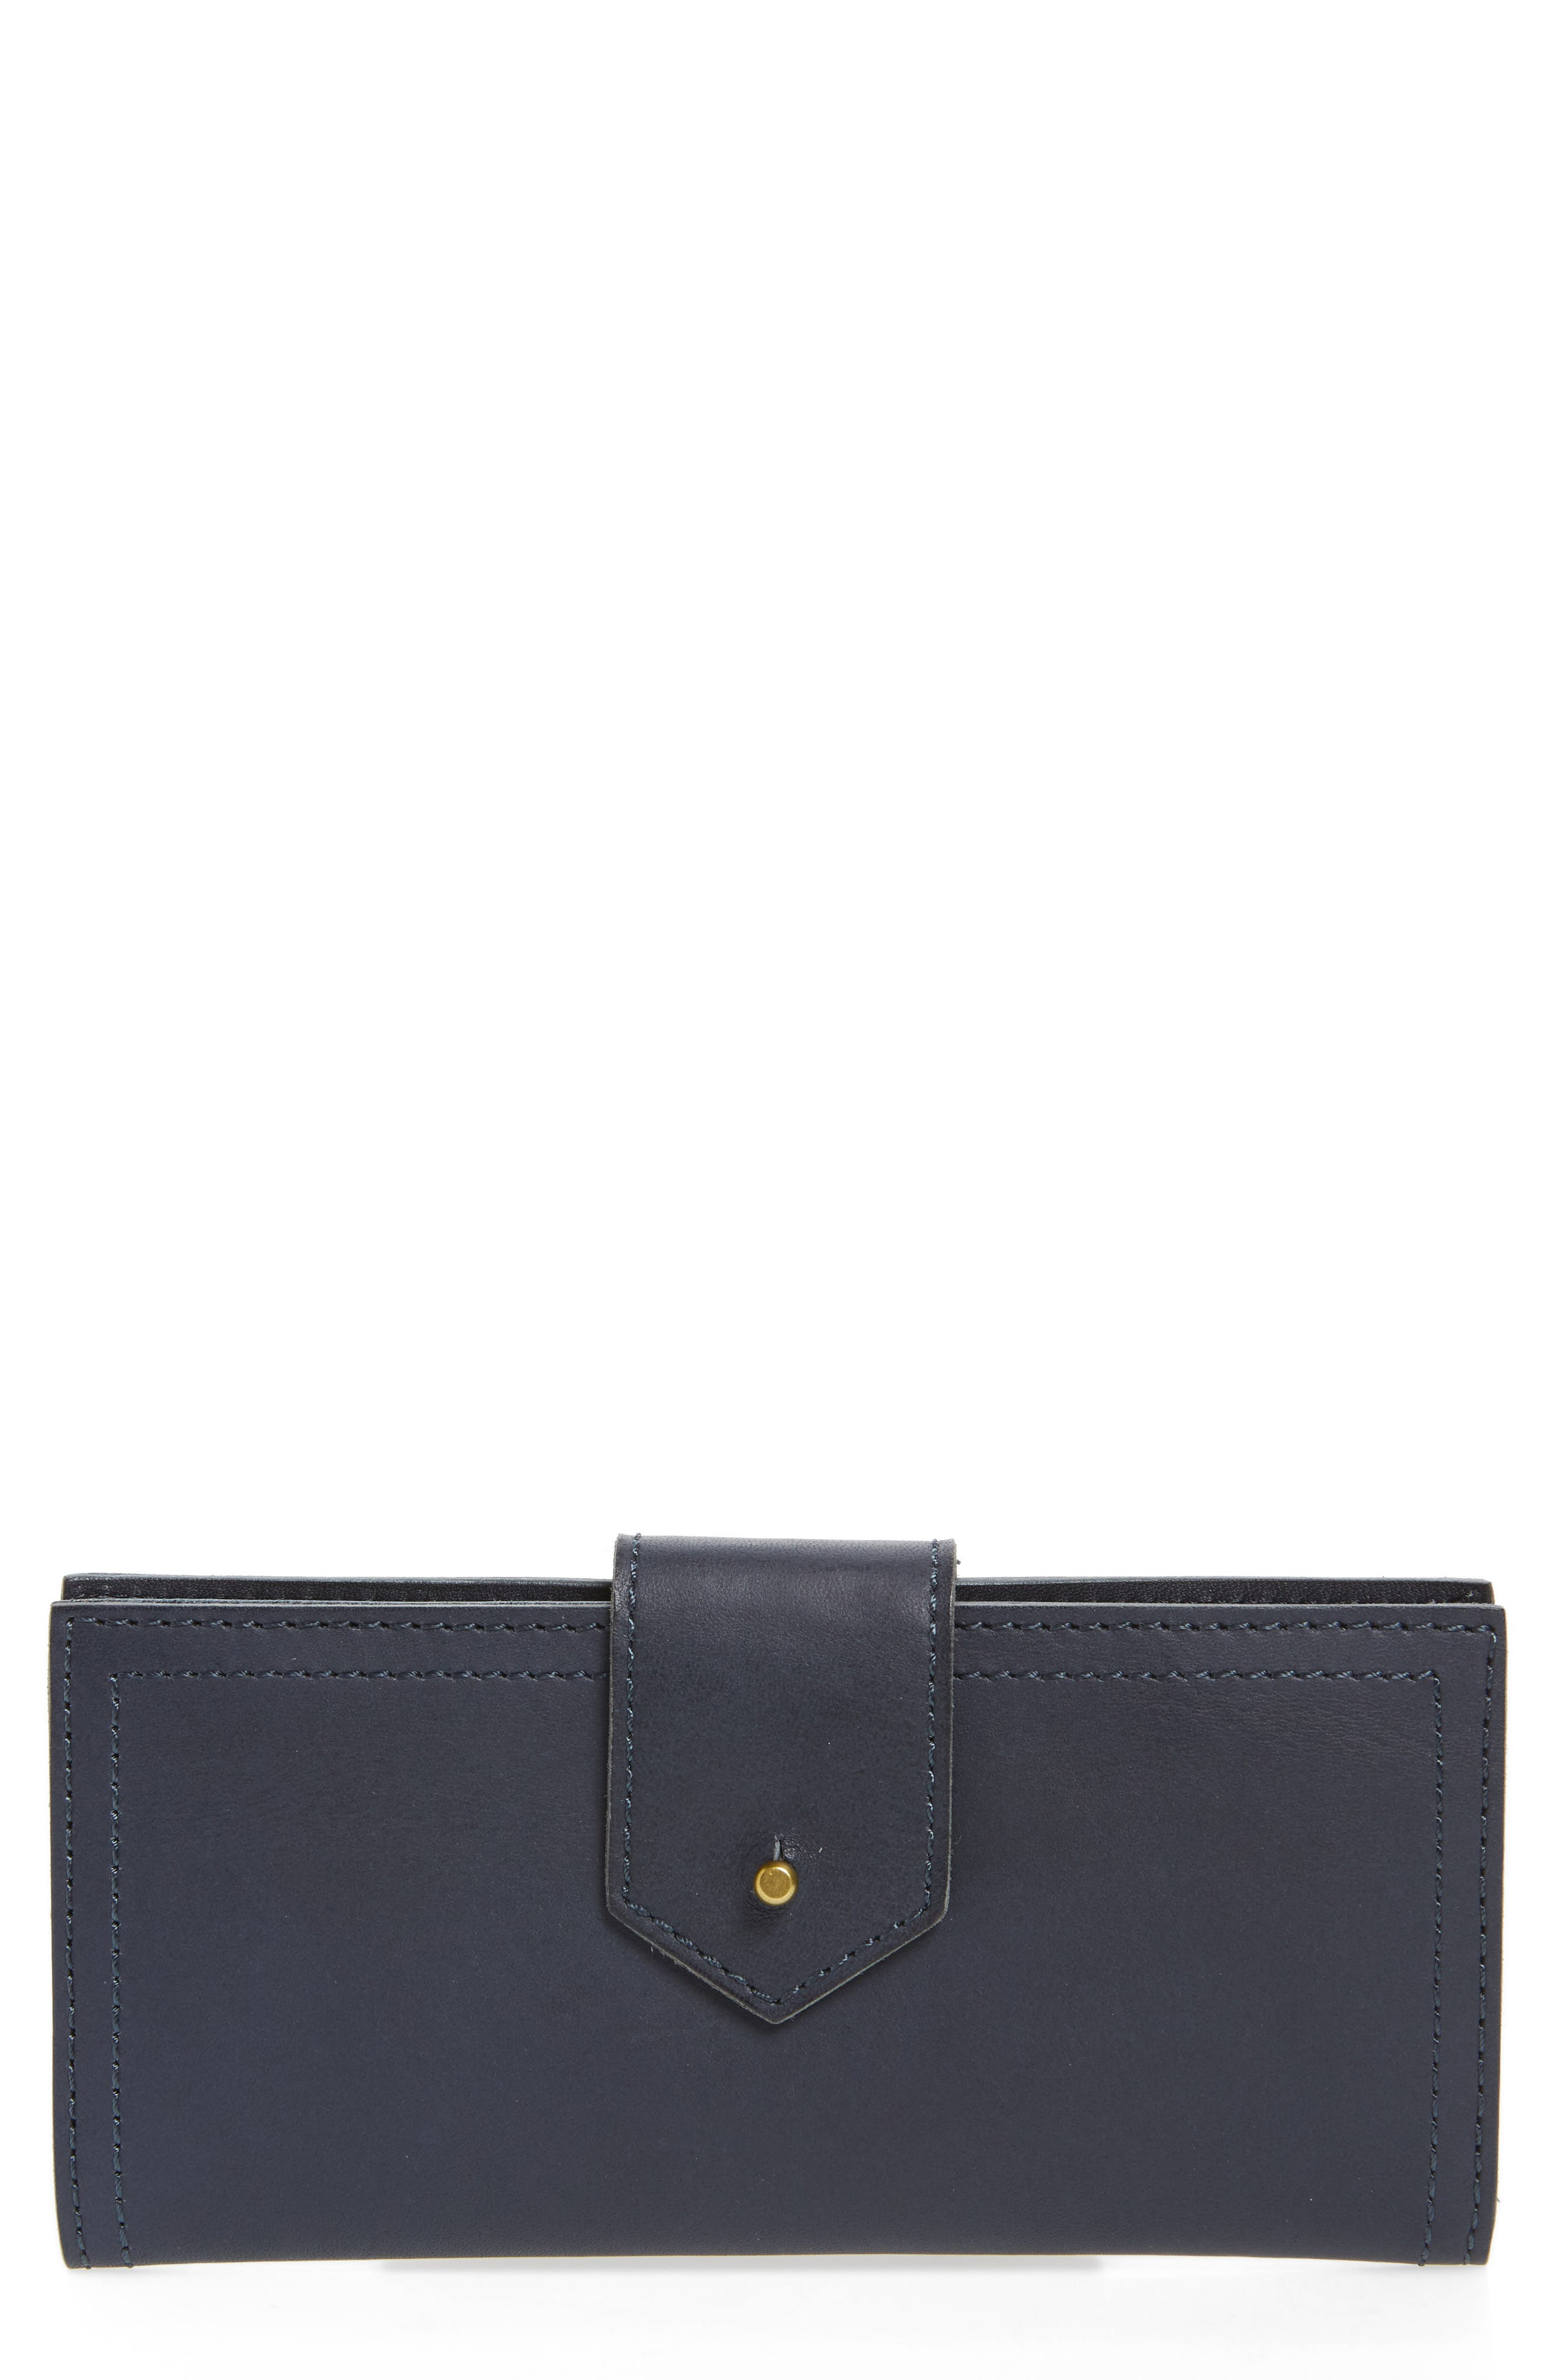 Main Image - Madewell The Post Leather Wallet